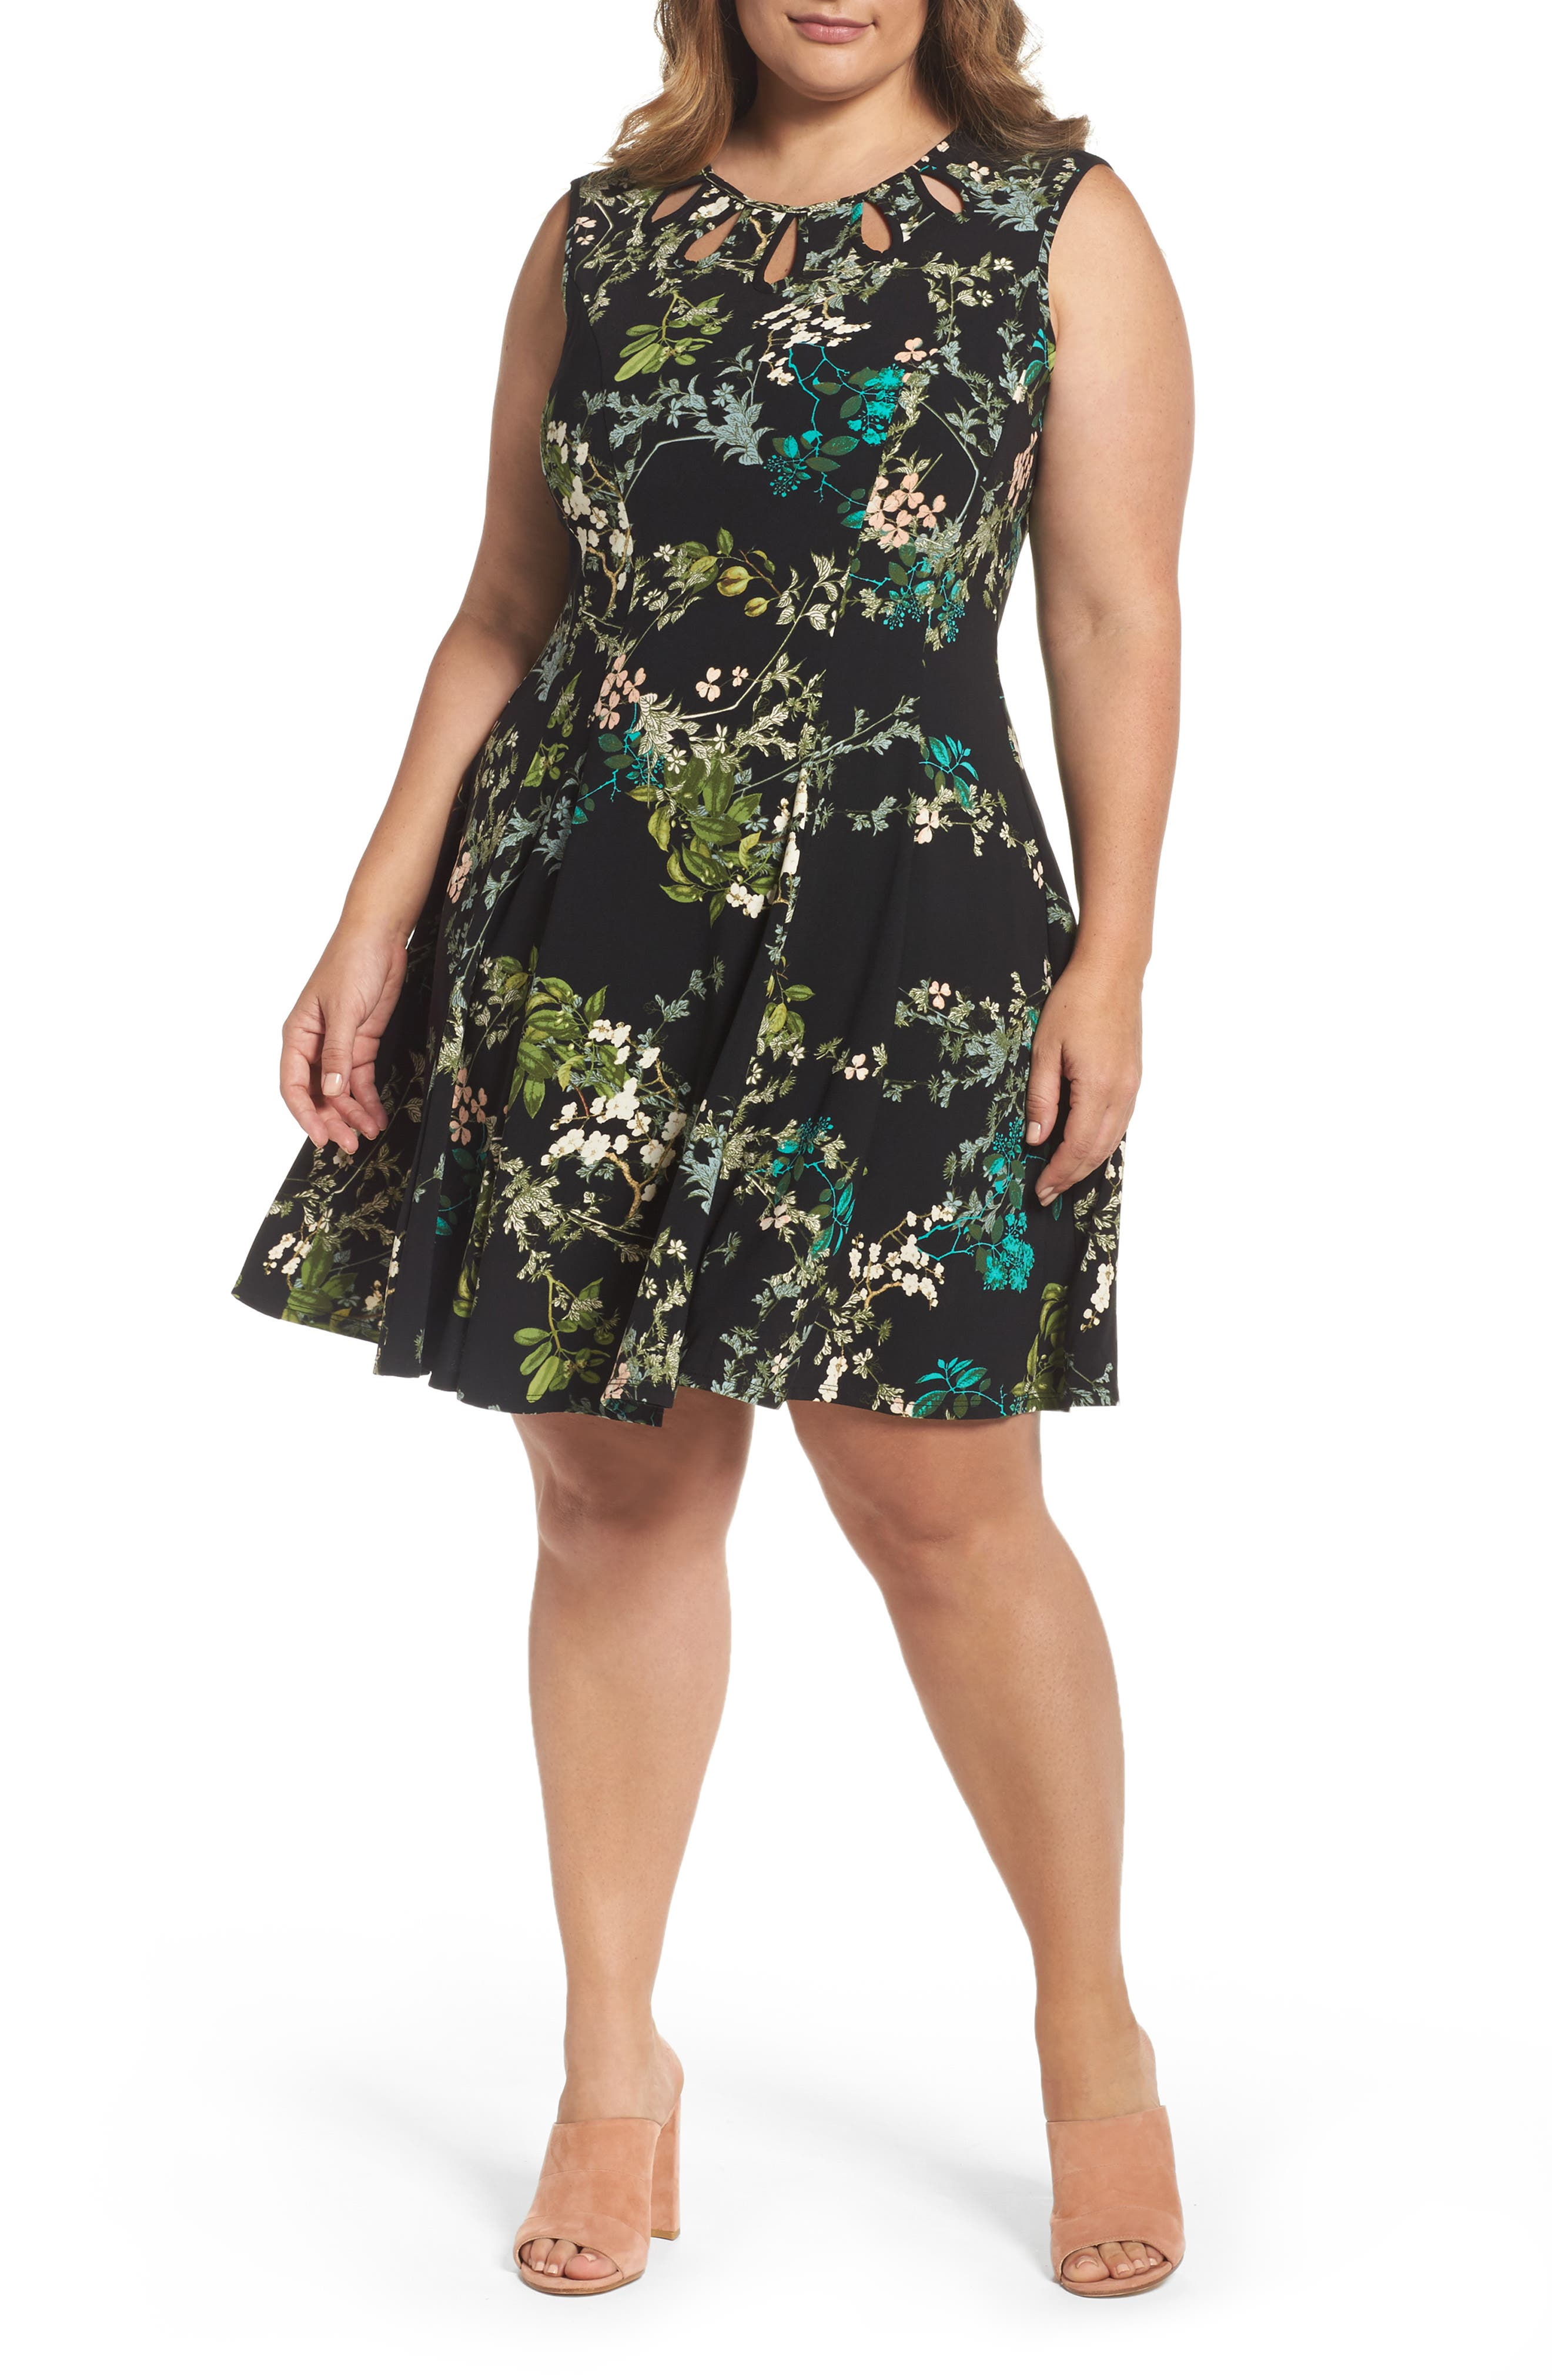 Gabby Skye Keyhole Detail Floral Fit & Flare Dress (Plus Size)